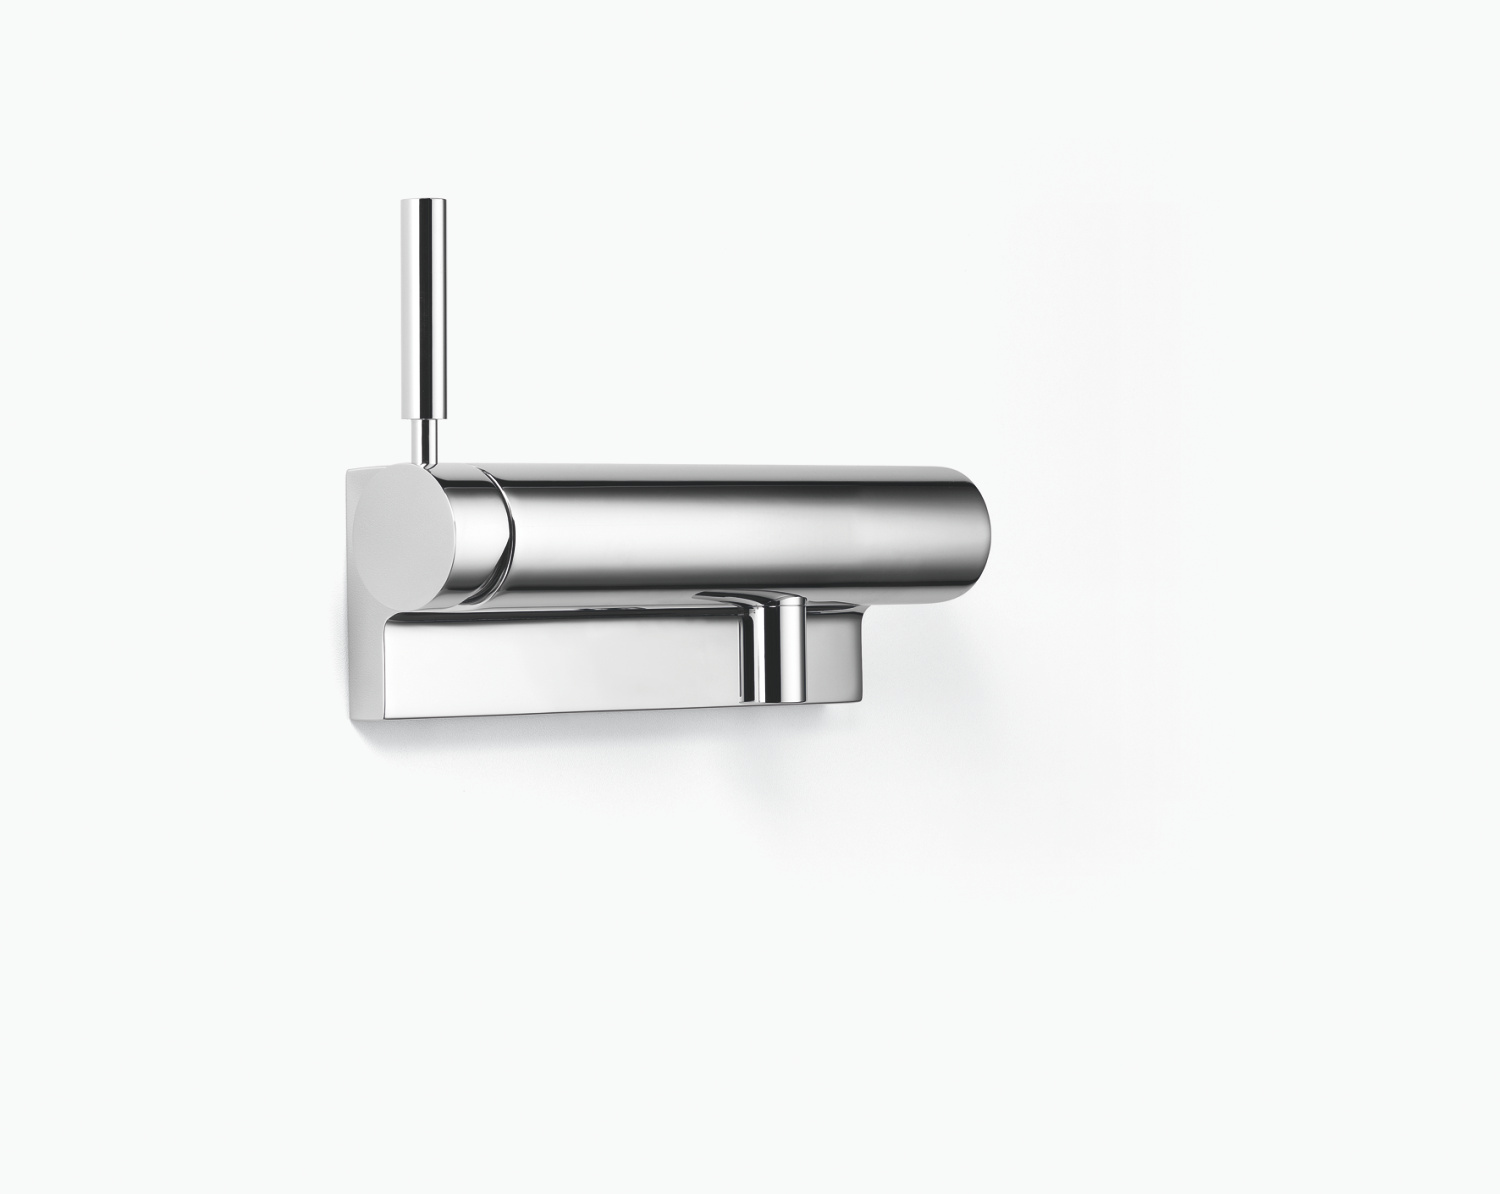 Single-lever shower mixer for wall mounting - platinum matt - 33 300 885-06